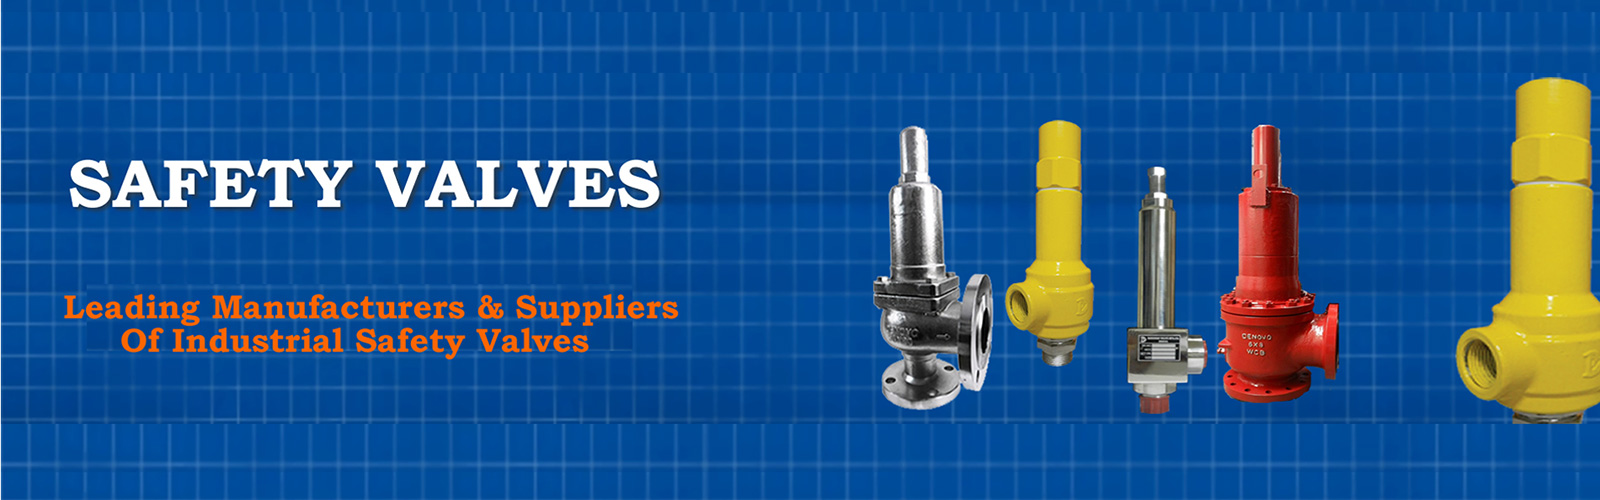 Safety Valves Manufacturer